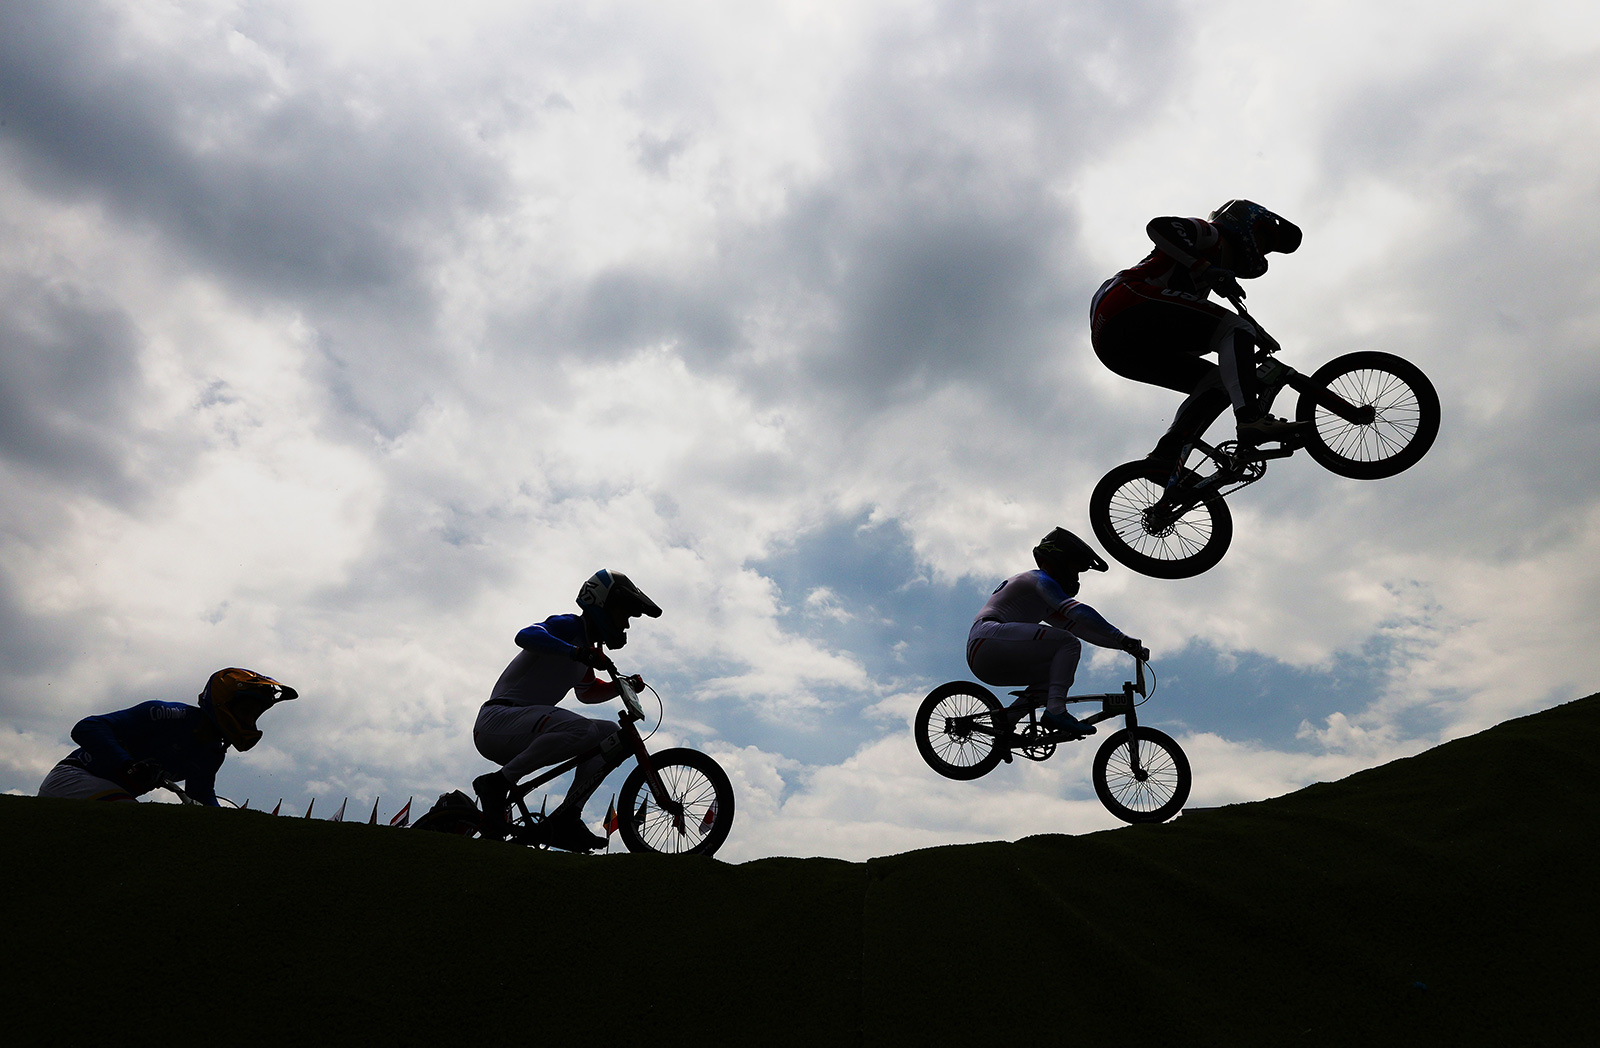 Sylvain Andre and Romain Mahieu of Team France, and Connor Fields of the US compete in the BMX semifinals on Friday in Tokyo.